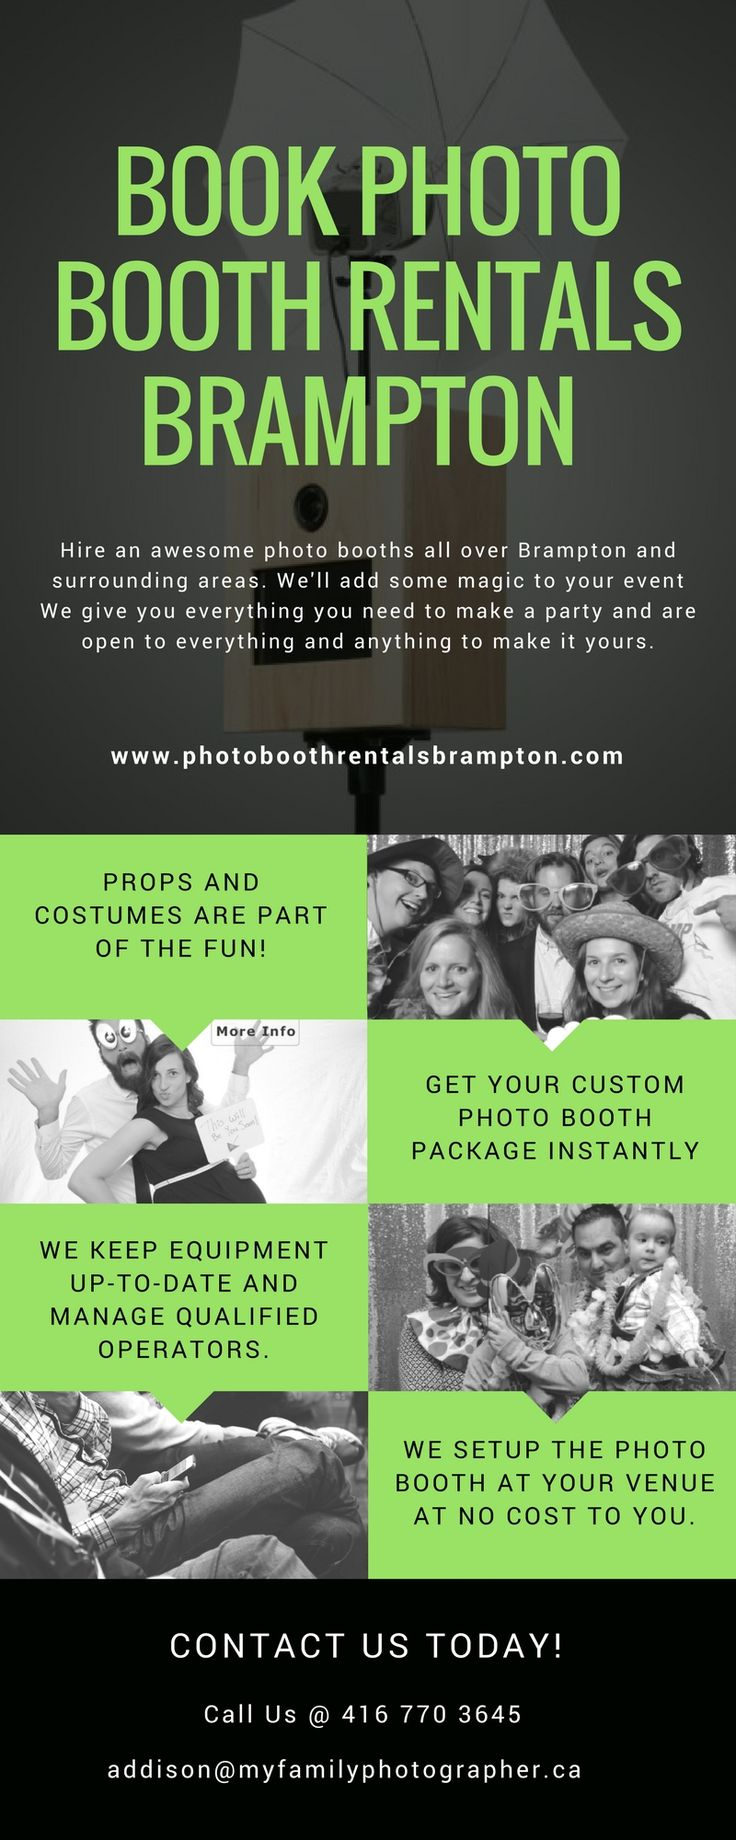 Hire an awesome photo booths all over Brampton and surrounding areas. We'll add some magic to your event We give you everything you need to make a party and are open to everything and anything to make it yours.